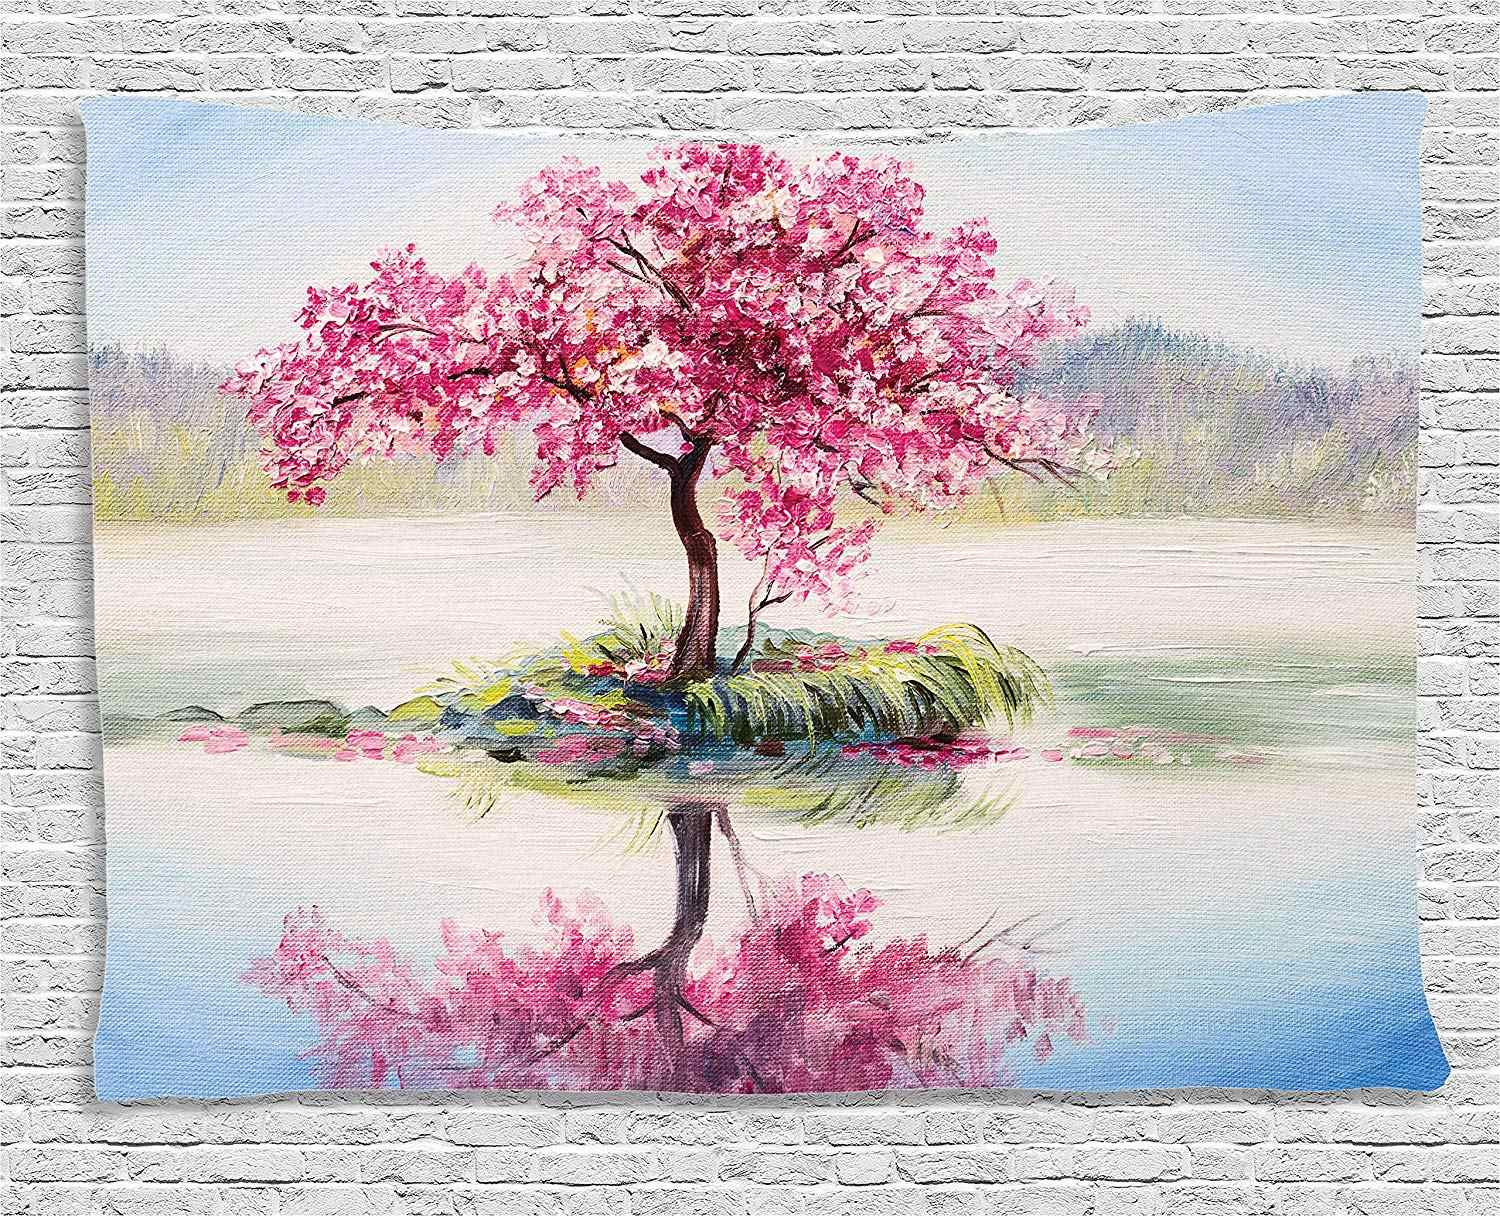 Tree Tapestry Pink Floral Decor Blooming Japanese Cherry Sakura on the Lake Soft Romantic Almond Tree Paint Effect Wall Hanging